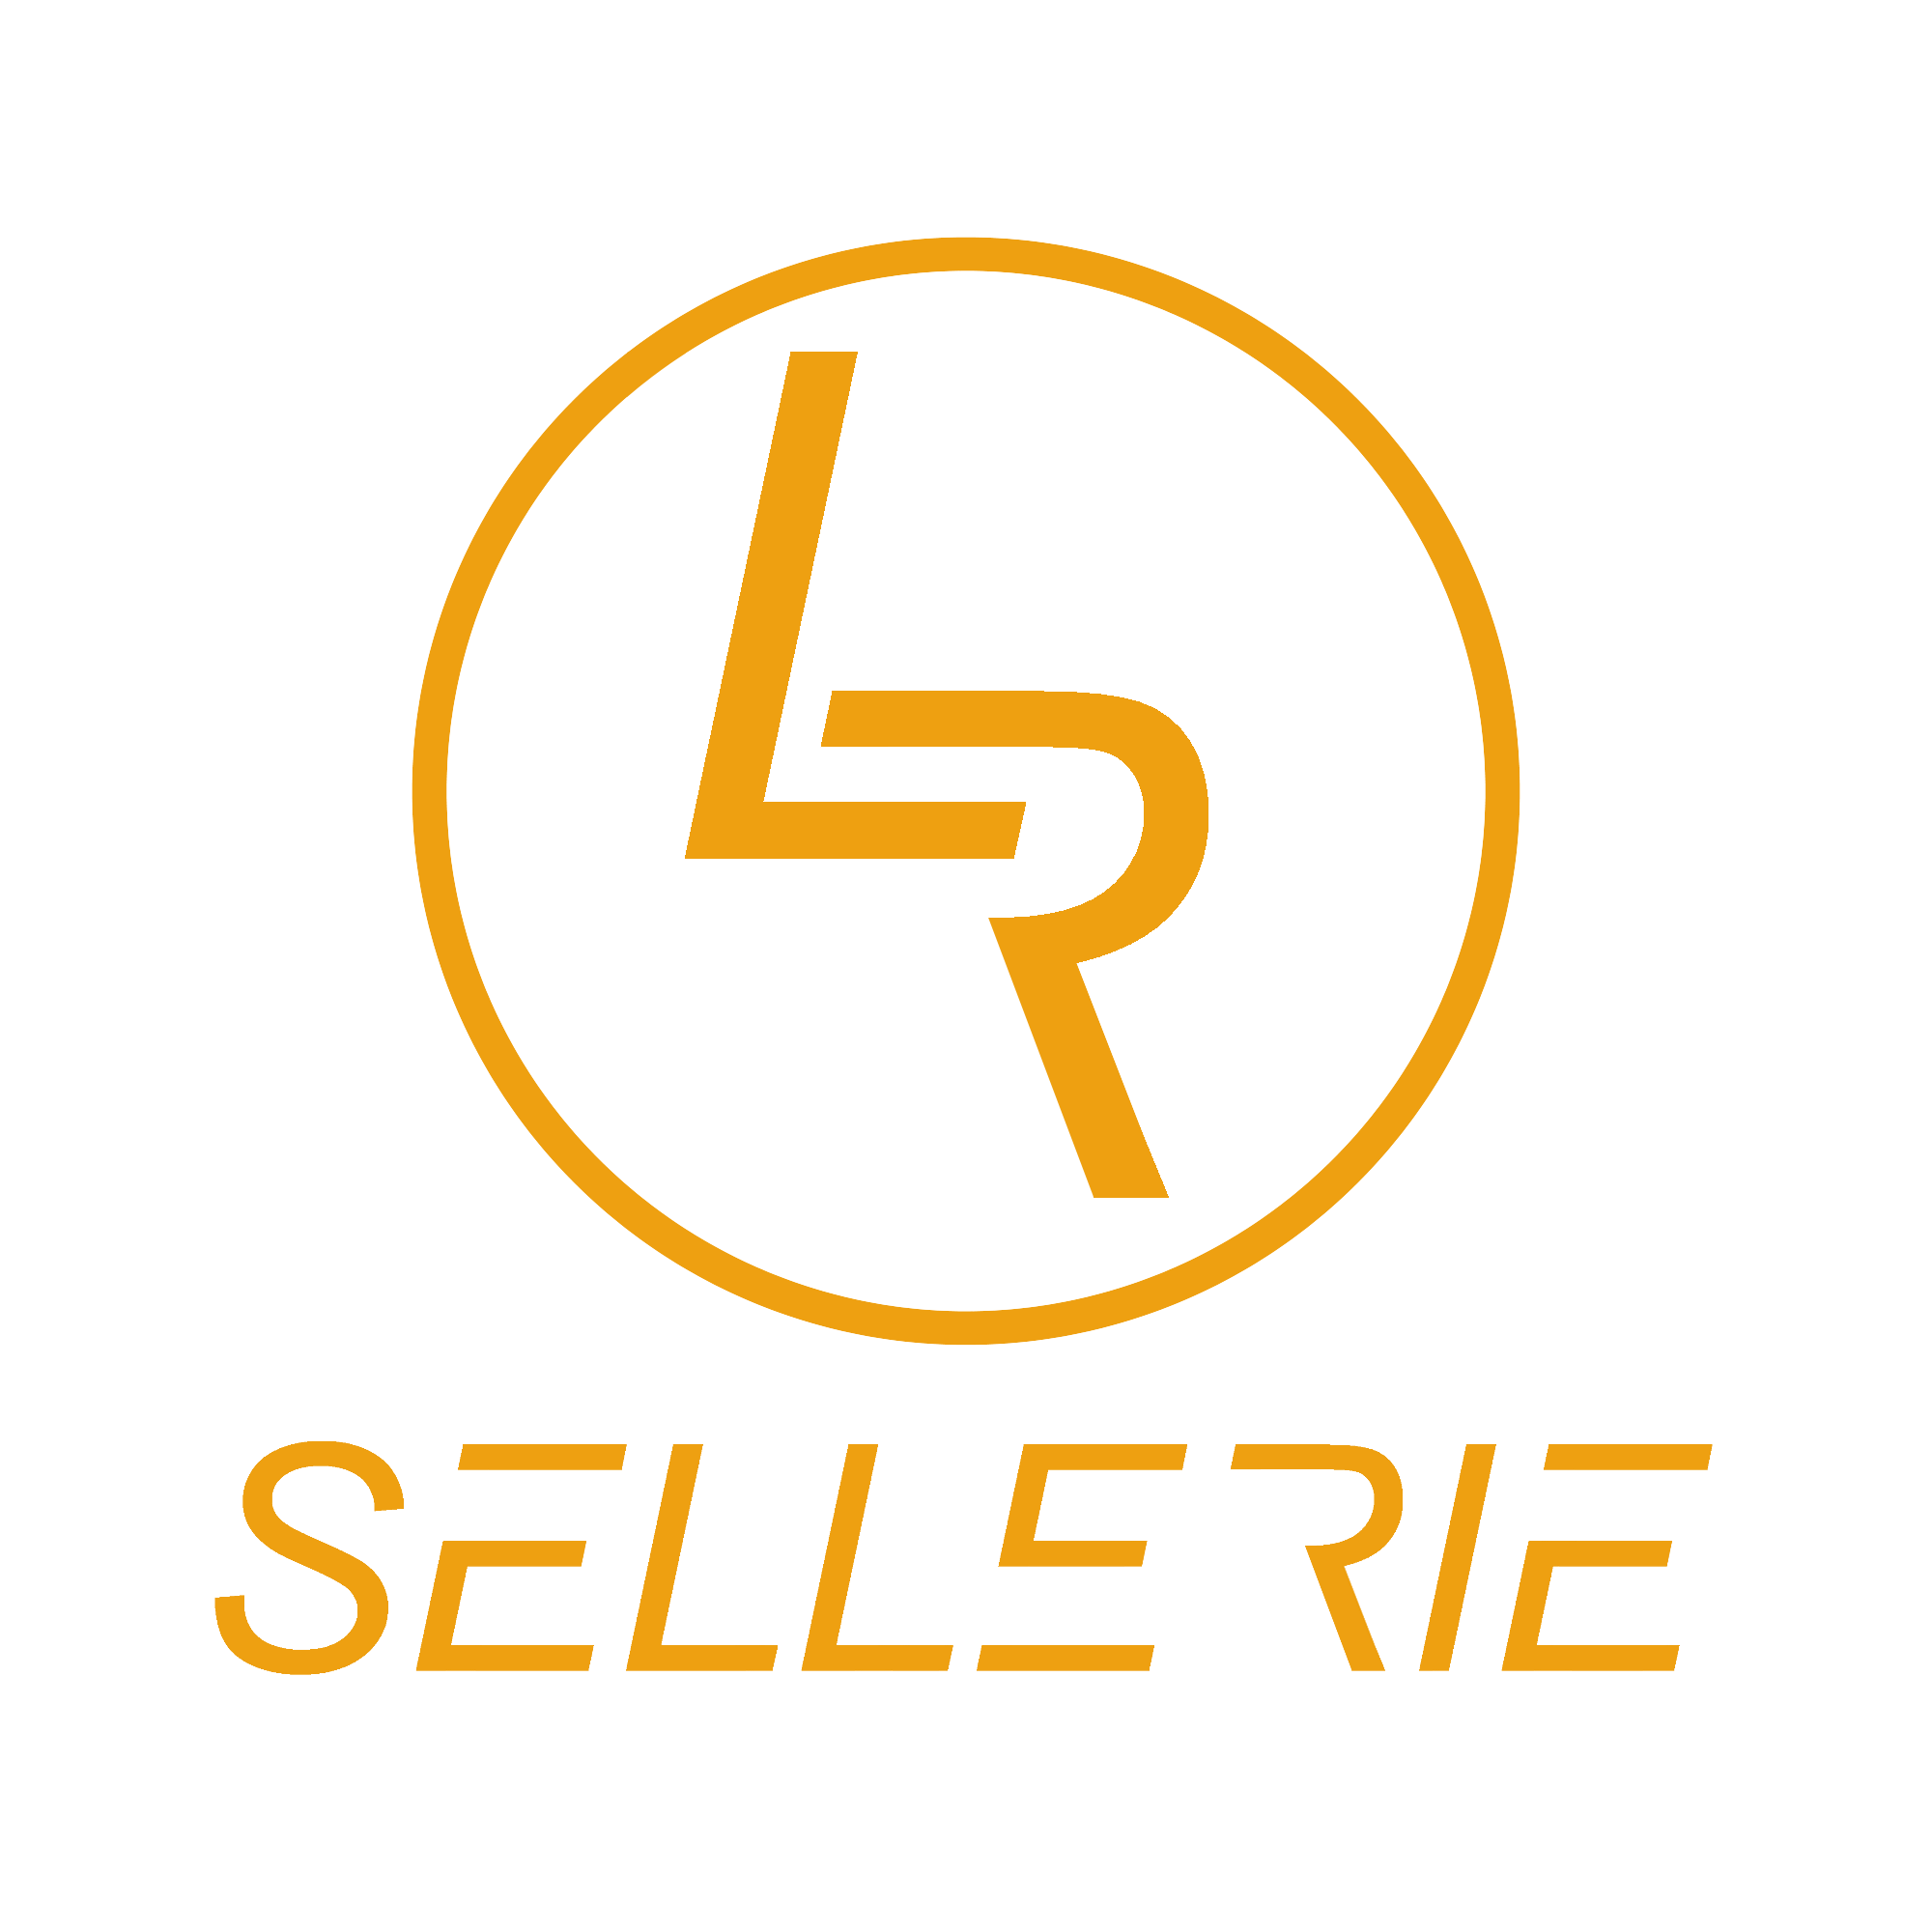 Logo LR - SELLERIE (Light)